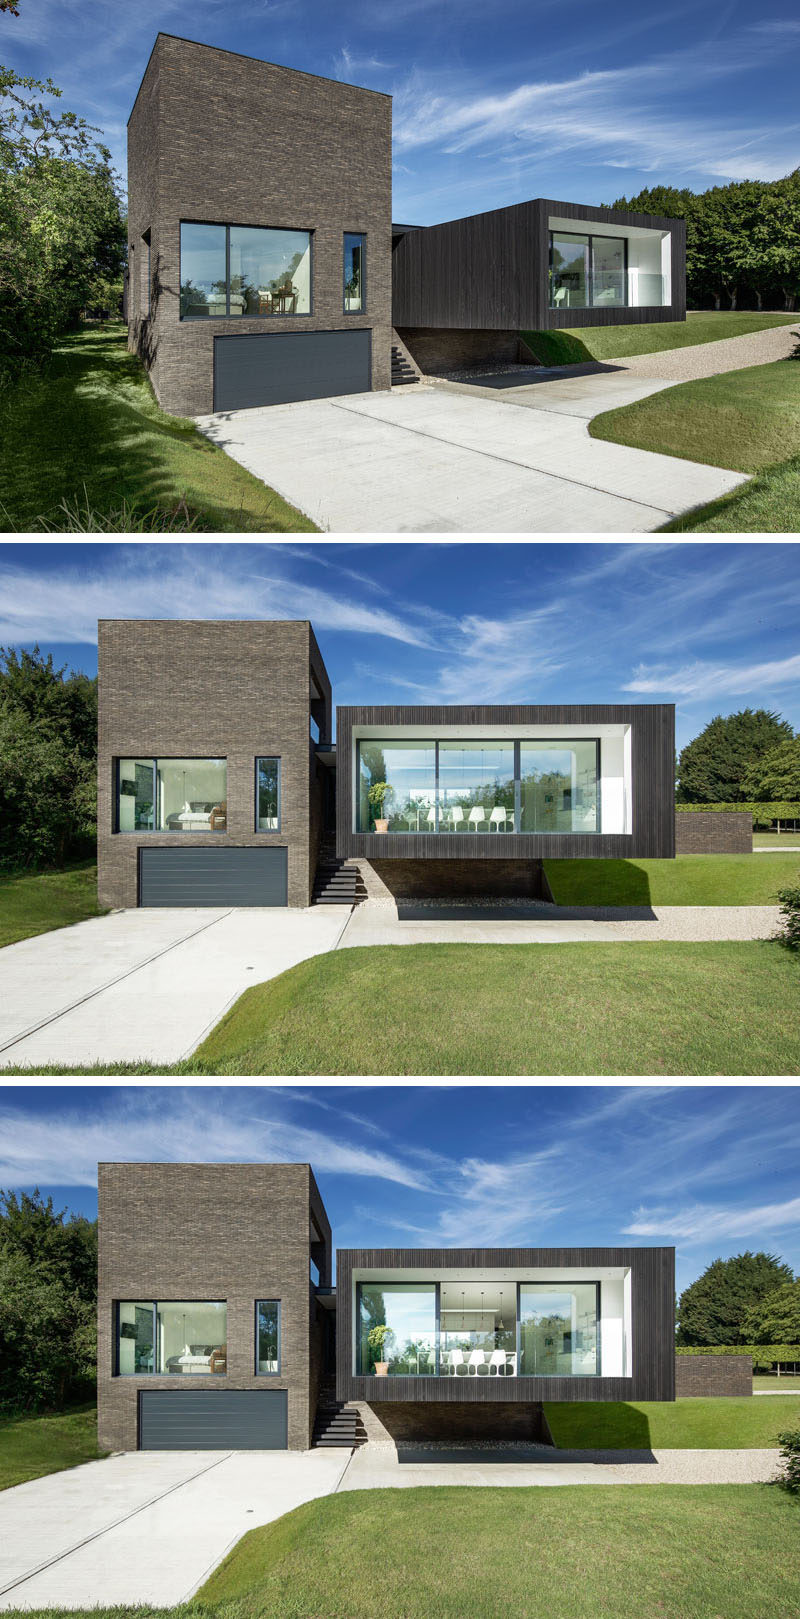 This modern house has been designed so that it almost appears to be floating, and at one end there's an almost 24 foot (7.3m) cantilevered section that houses the dining room. Sliding glass doors open to a balcony that overlooks the manicured gardens that surround the house.